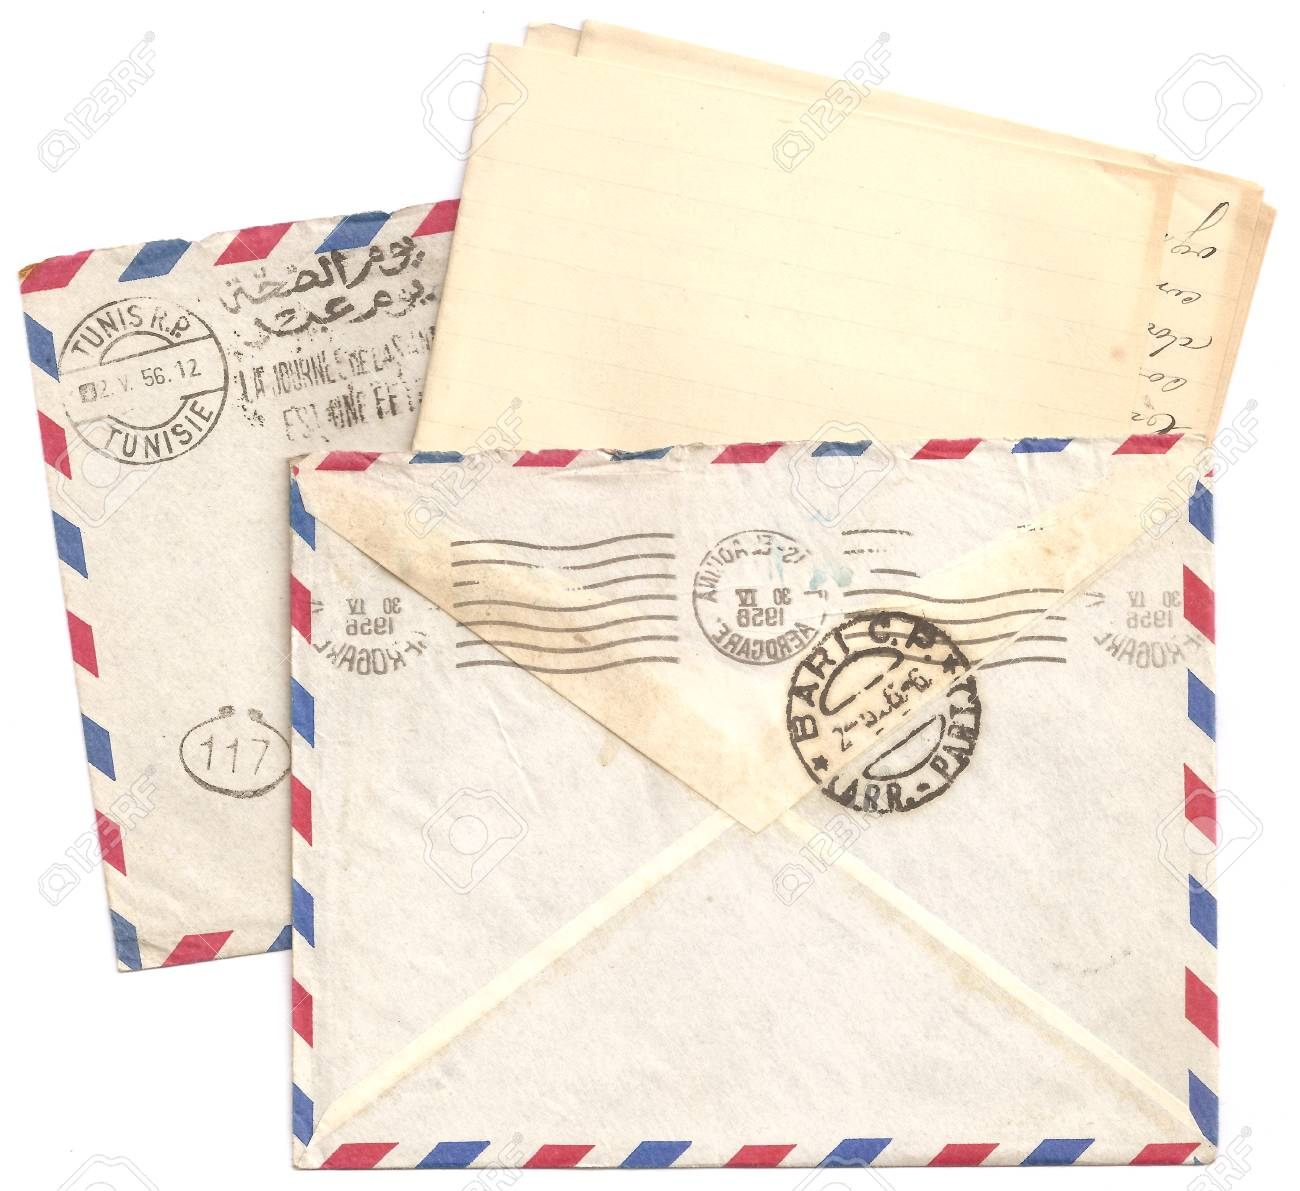 antique old air mail letter envelopes and with postmarks postage stamp front and back side